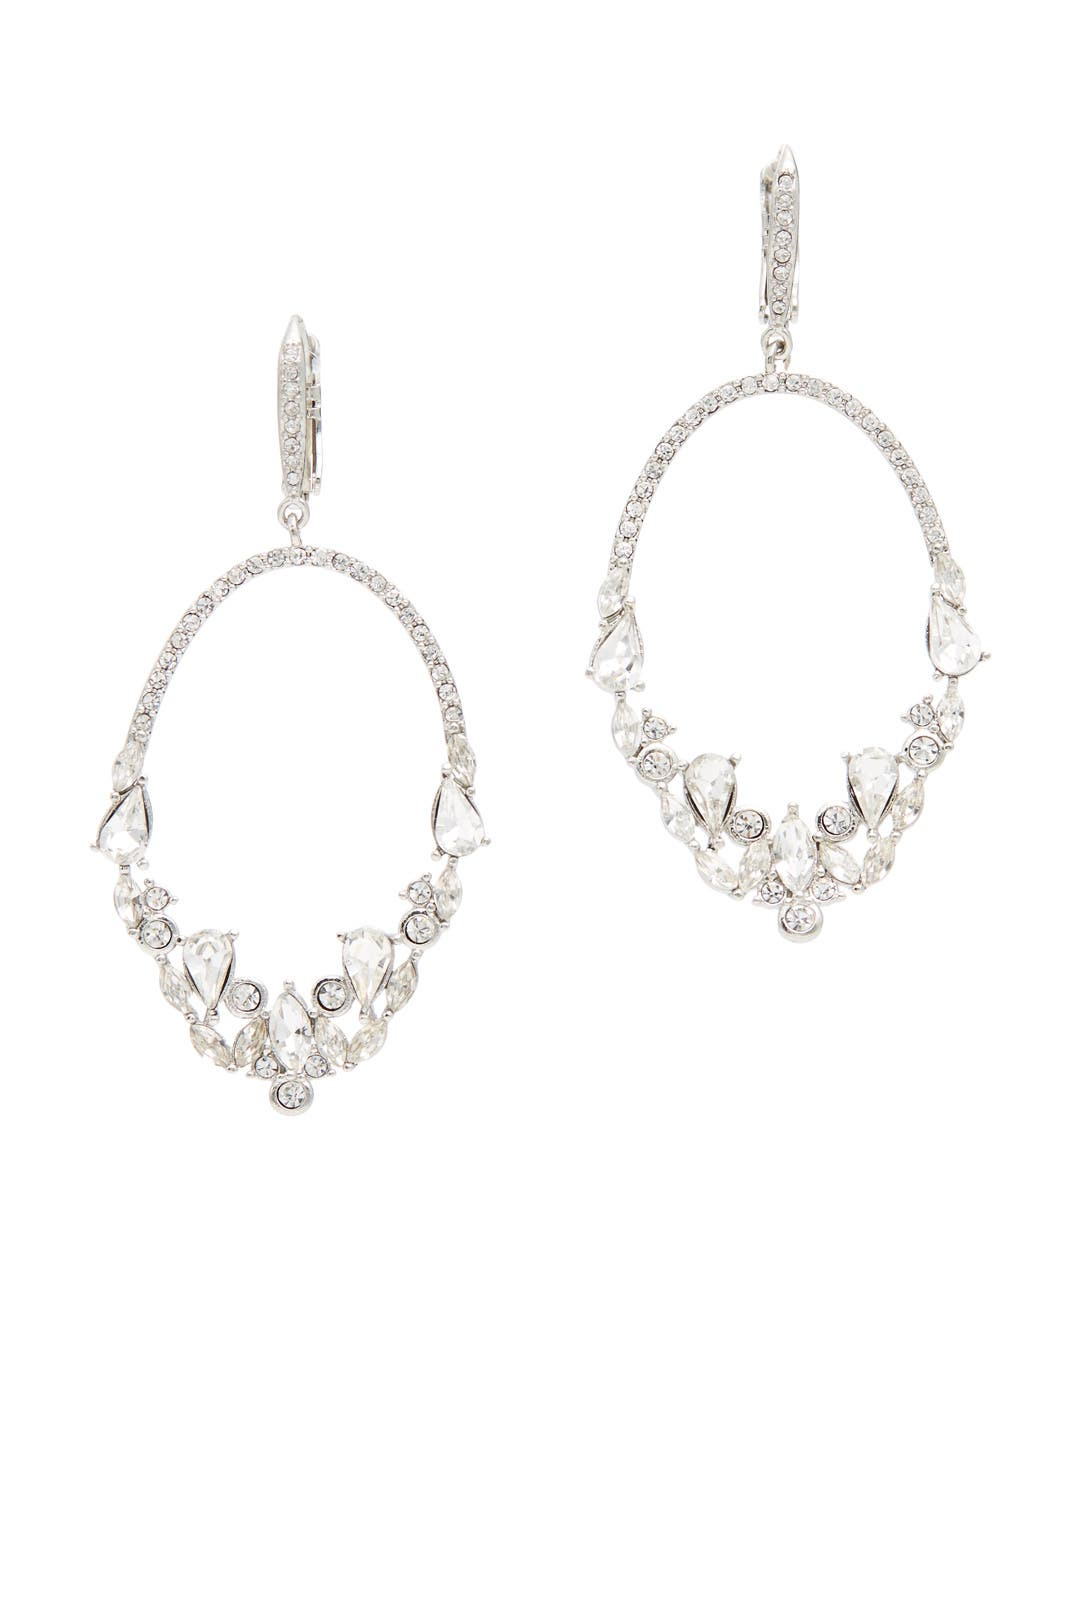 At First Sight Crystal Earrings By Jenny Packham For $10  Rent The Runway